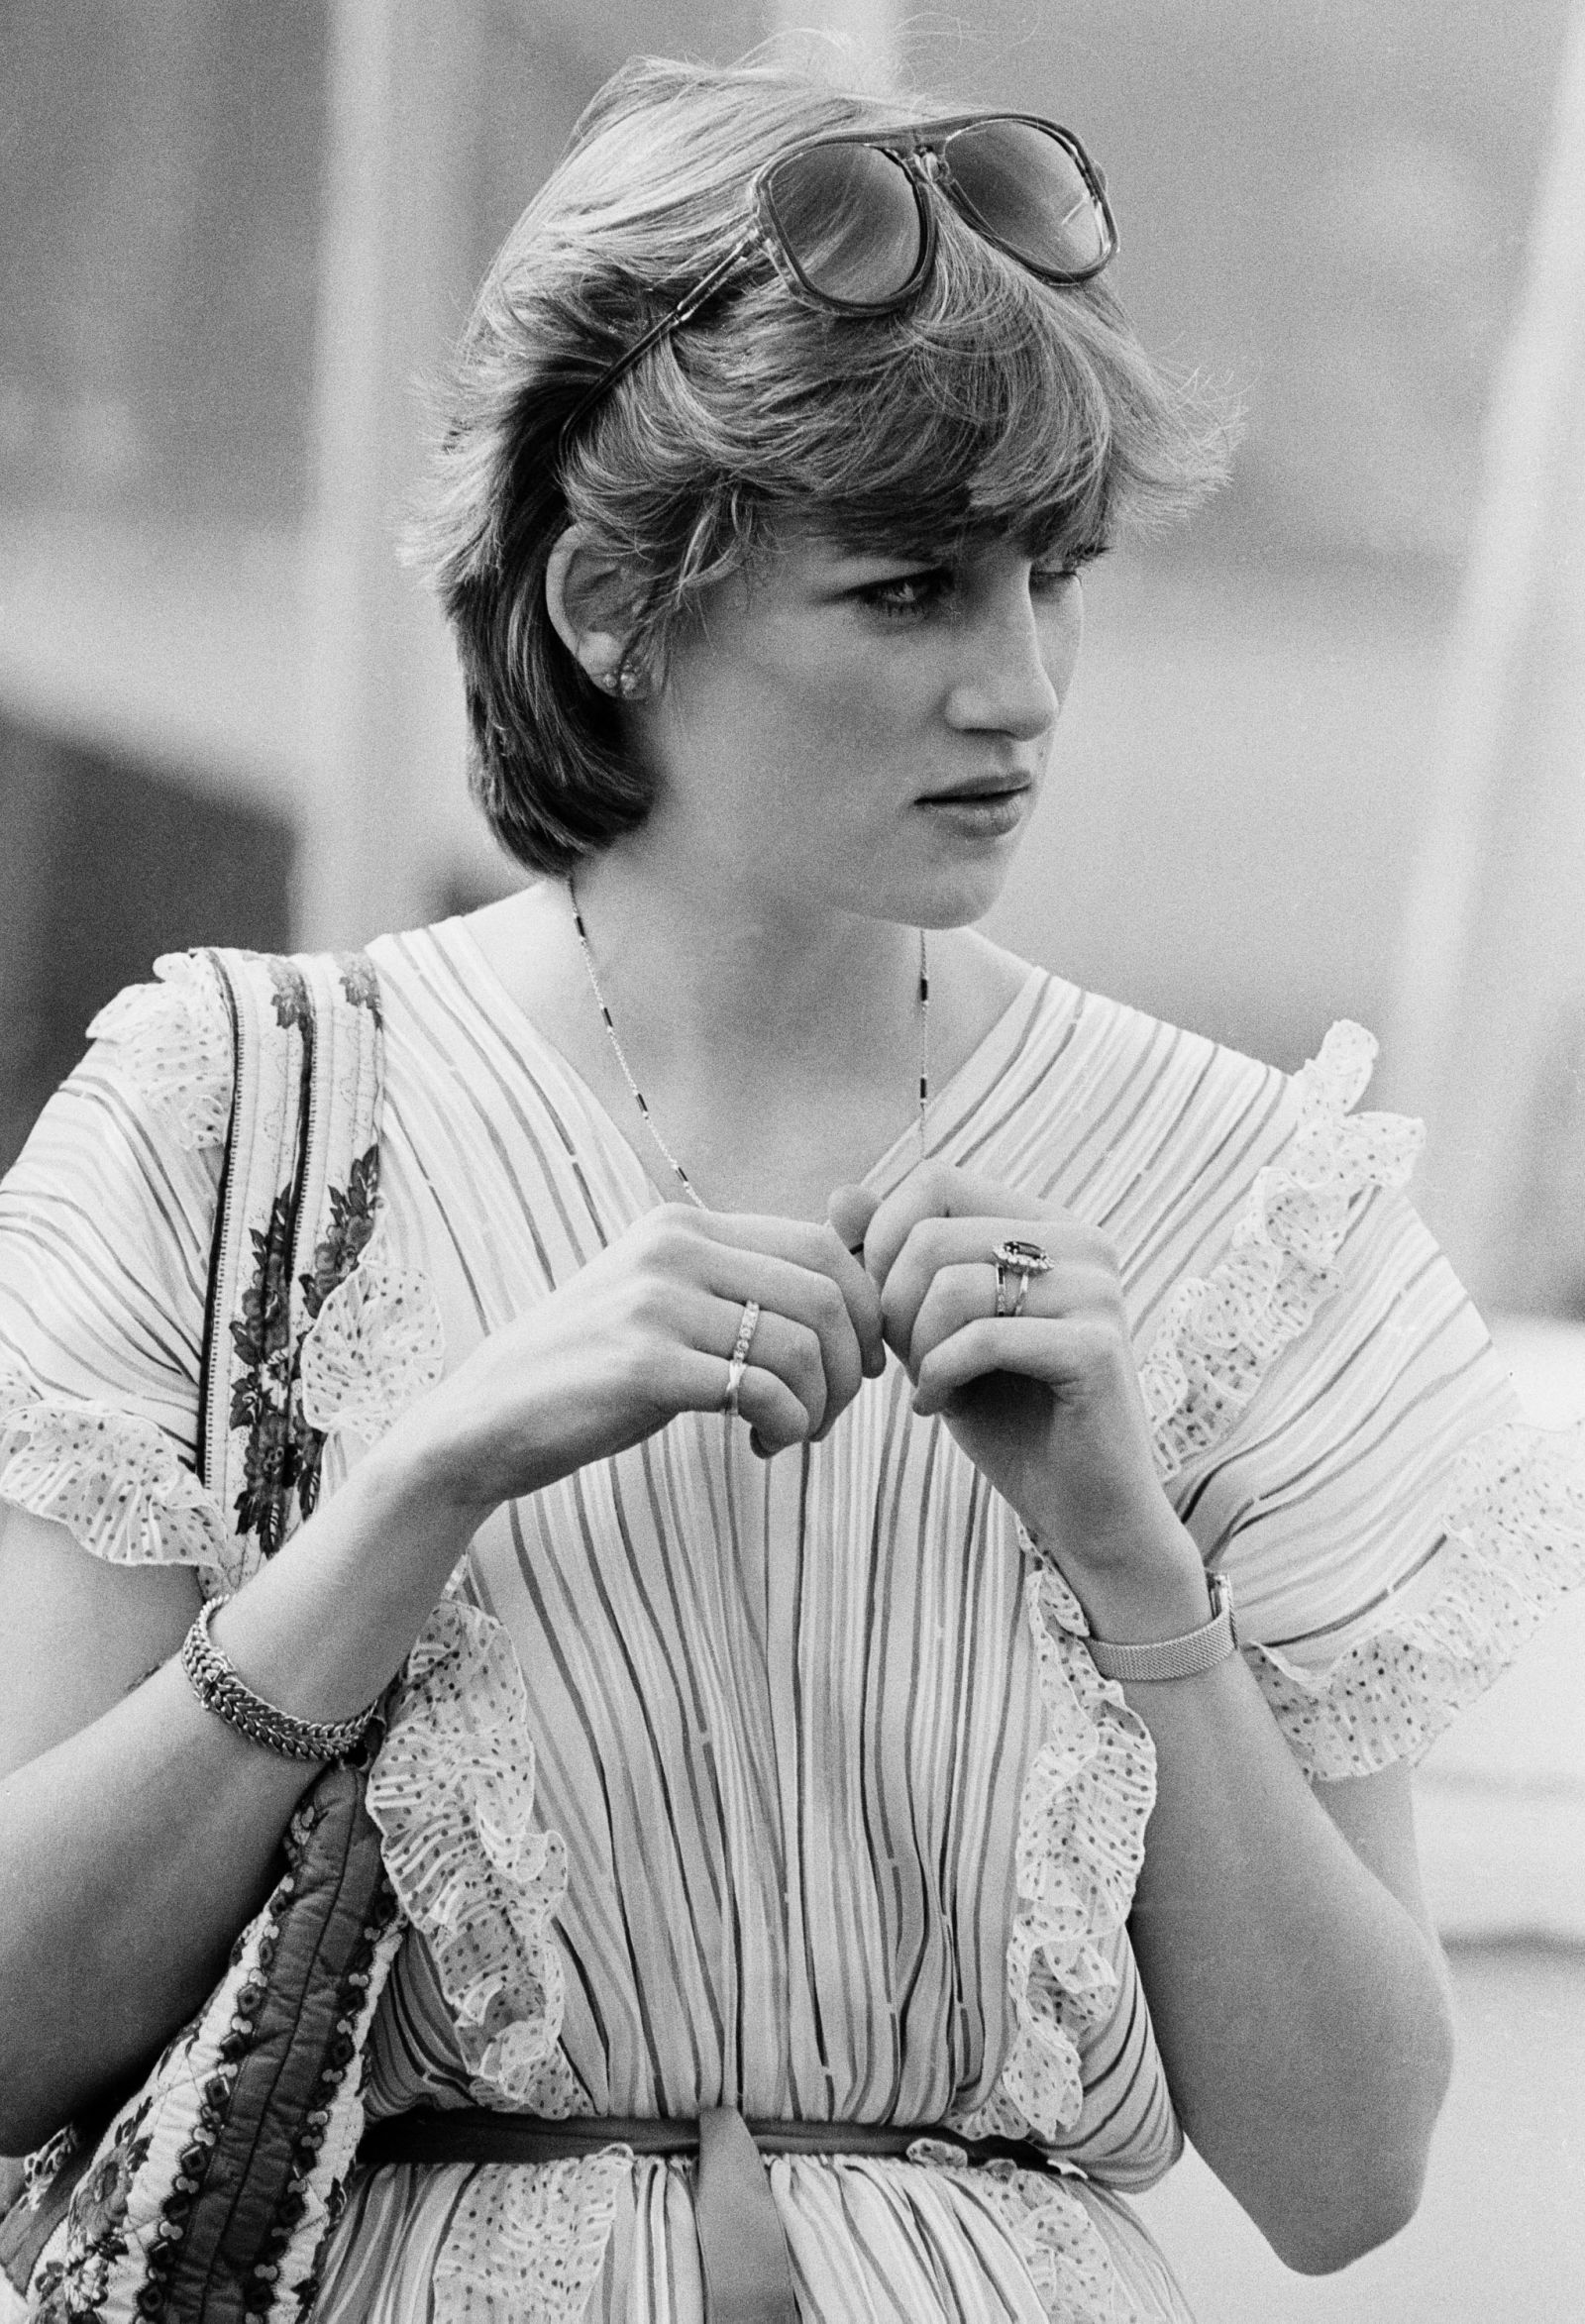 17 Gorgeous Photos of Princess Diana Youve Never Seen Before